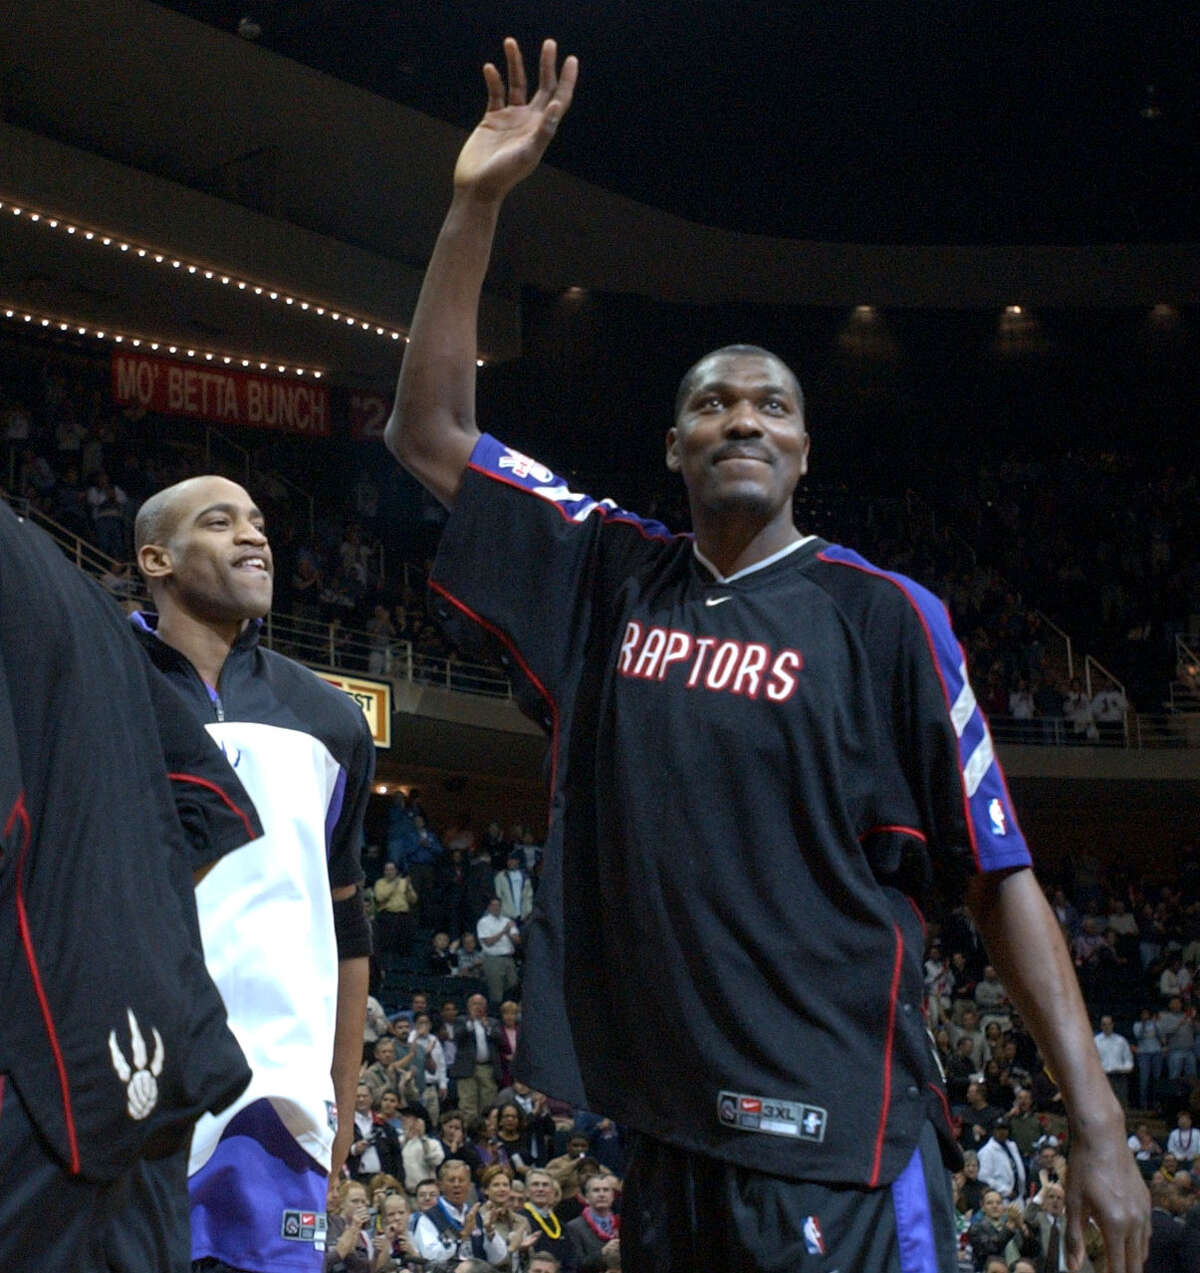 On Aug. 2, 2001, Hakeem Olajuwon was traded by the Rockets to Toronto, where he played his final season in a Raptors uniform Click through the gallery to see other stars who ended their careers in strange uniforms.